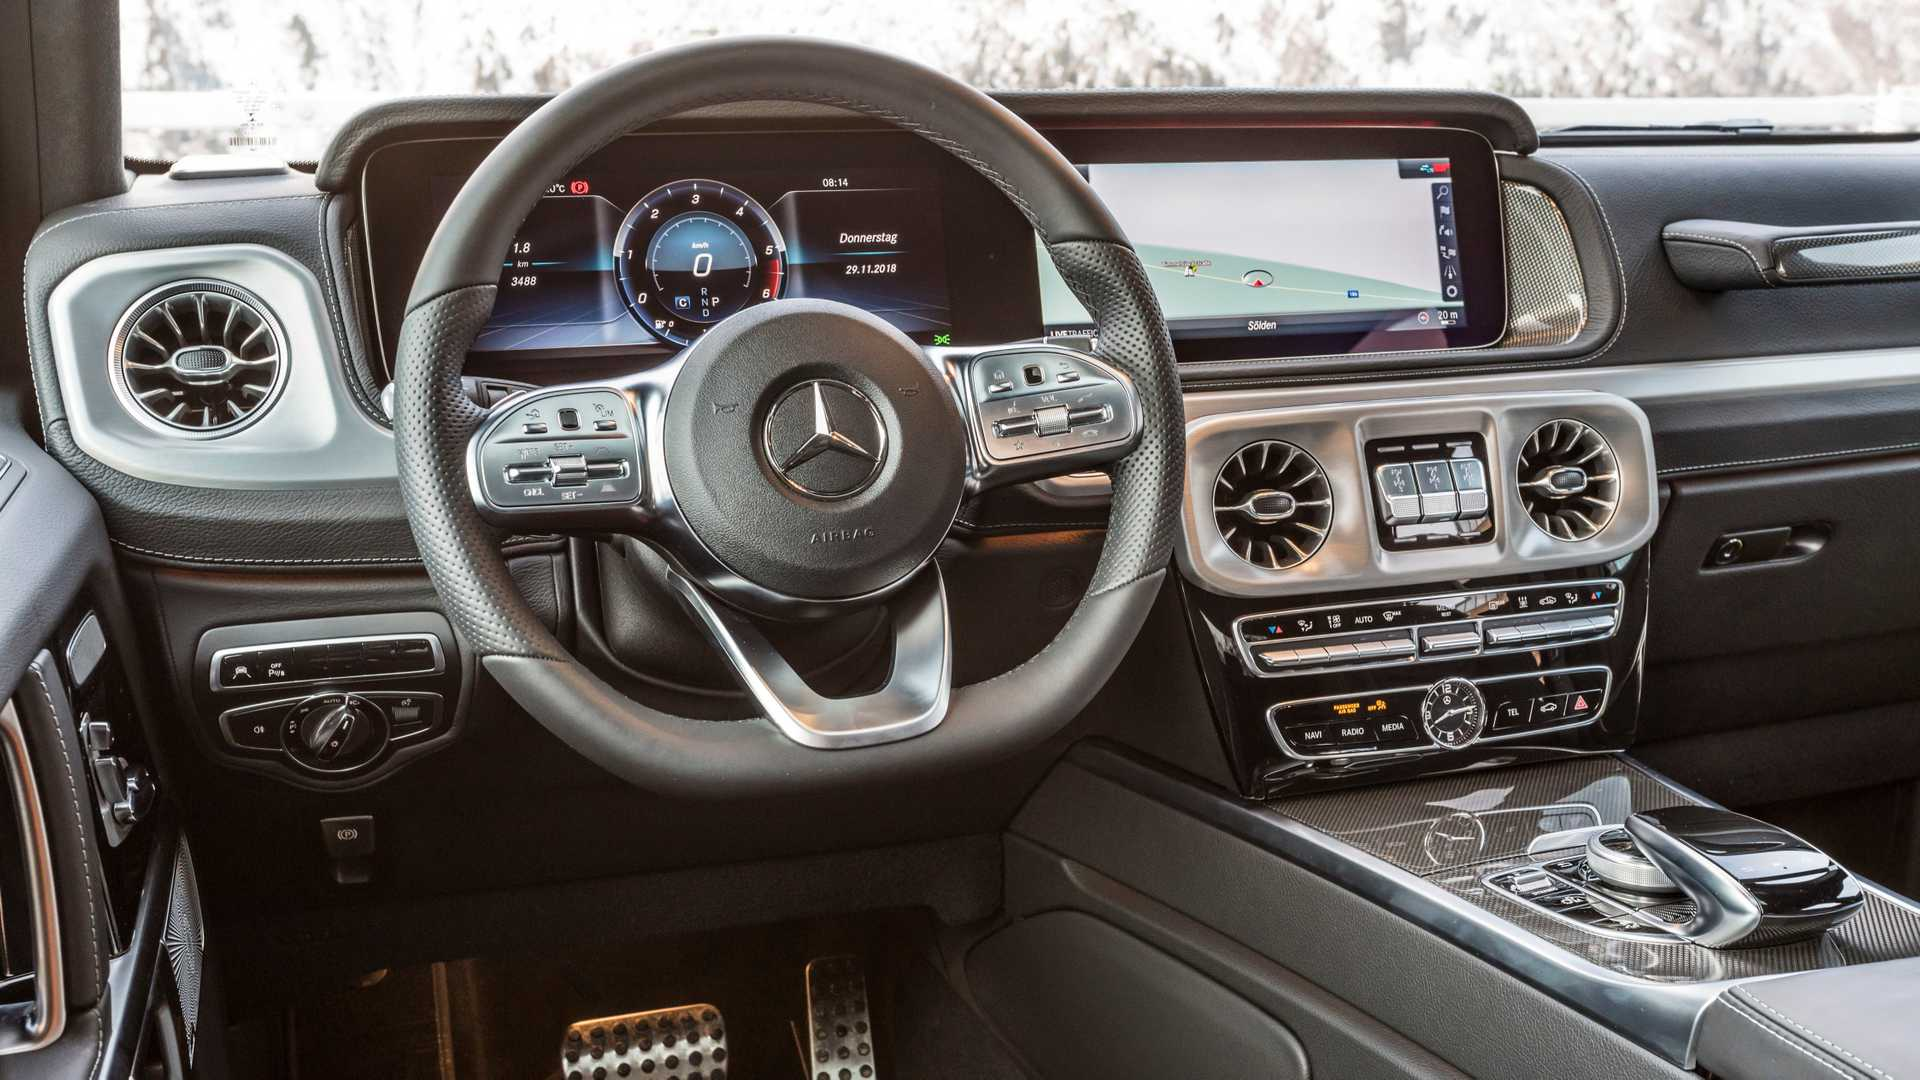 Mercedes G Class Suv >> 2019 Mercedes G 350 d Is a Refined and Civilized Entry-Level SUV - autoevolution